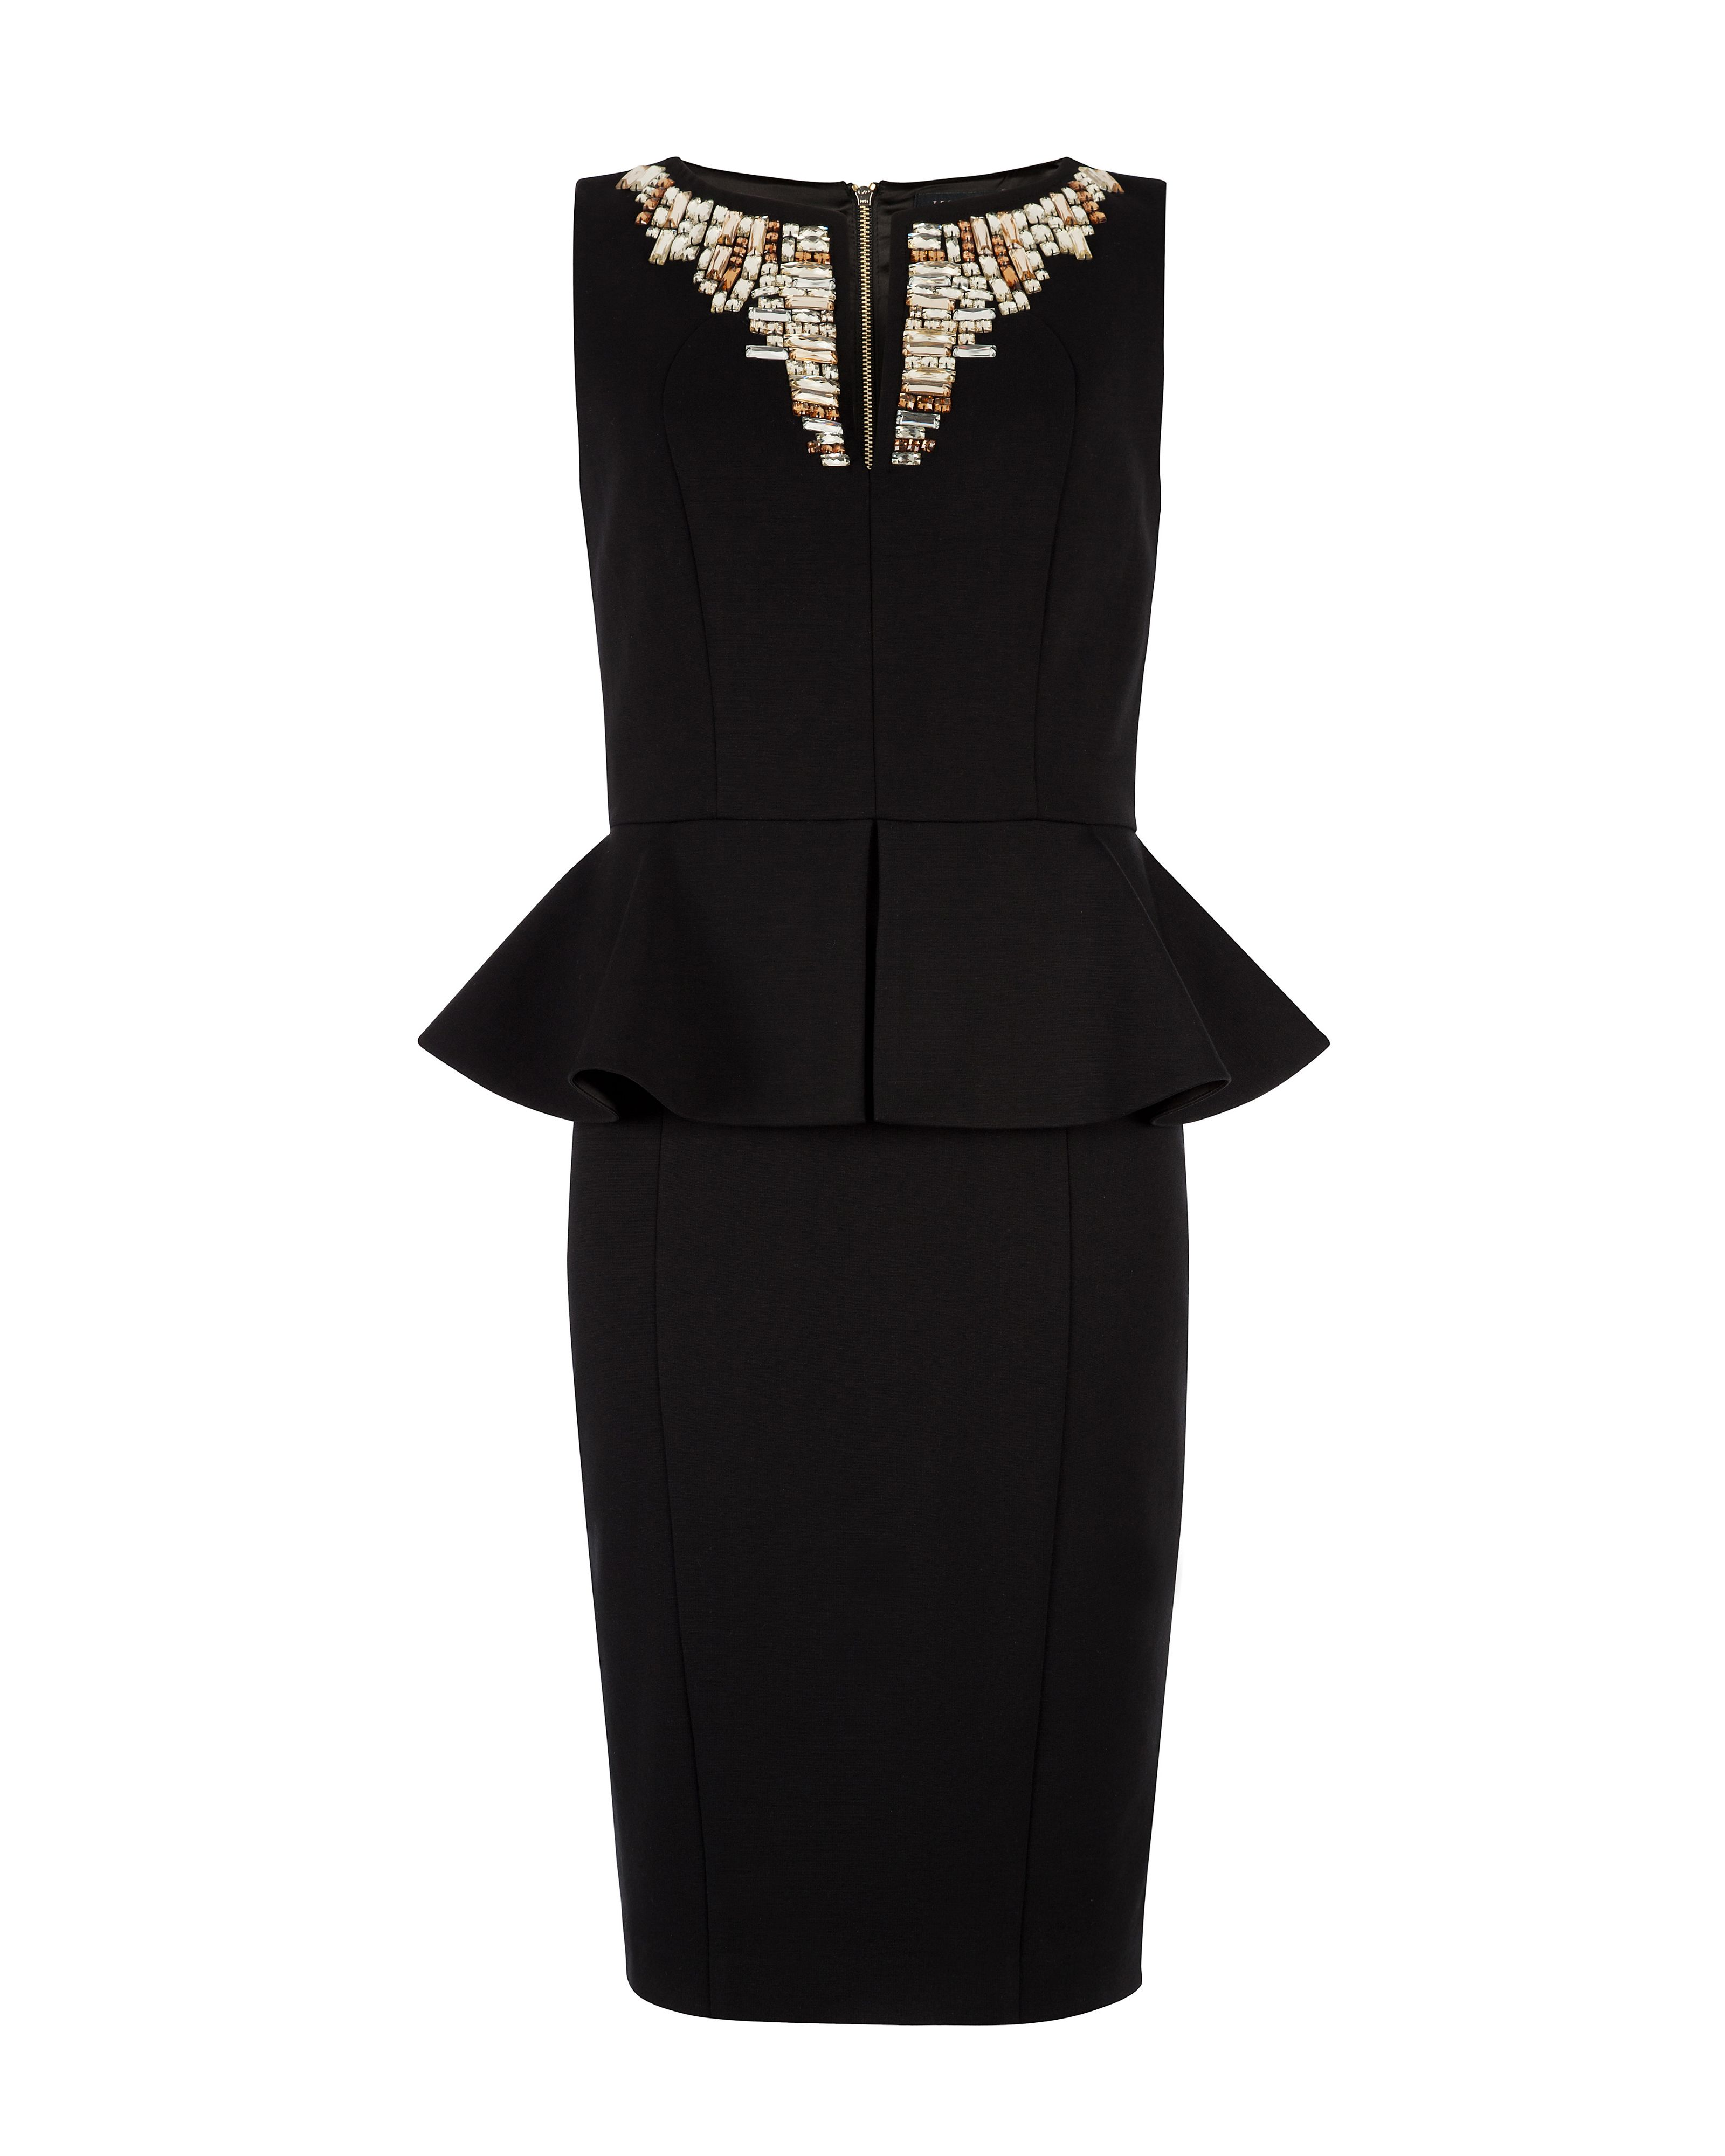 Fernola embellished neck dress